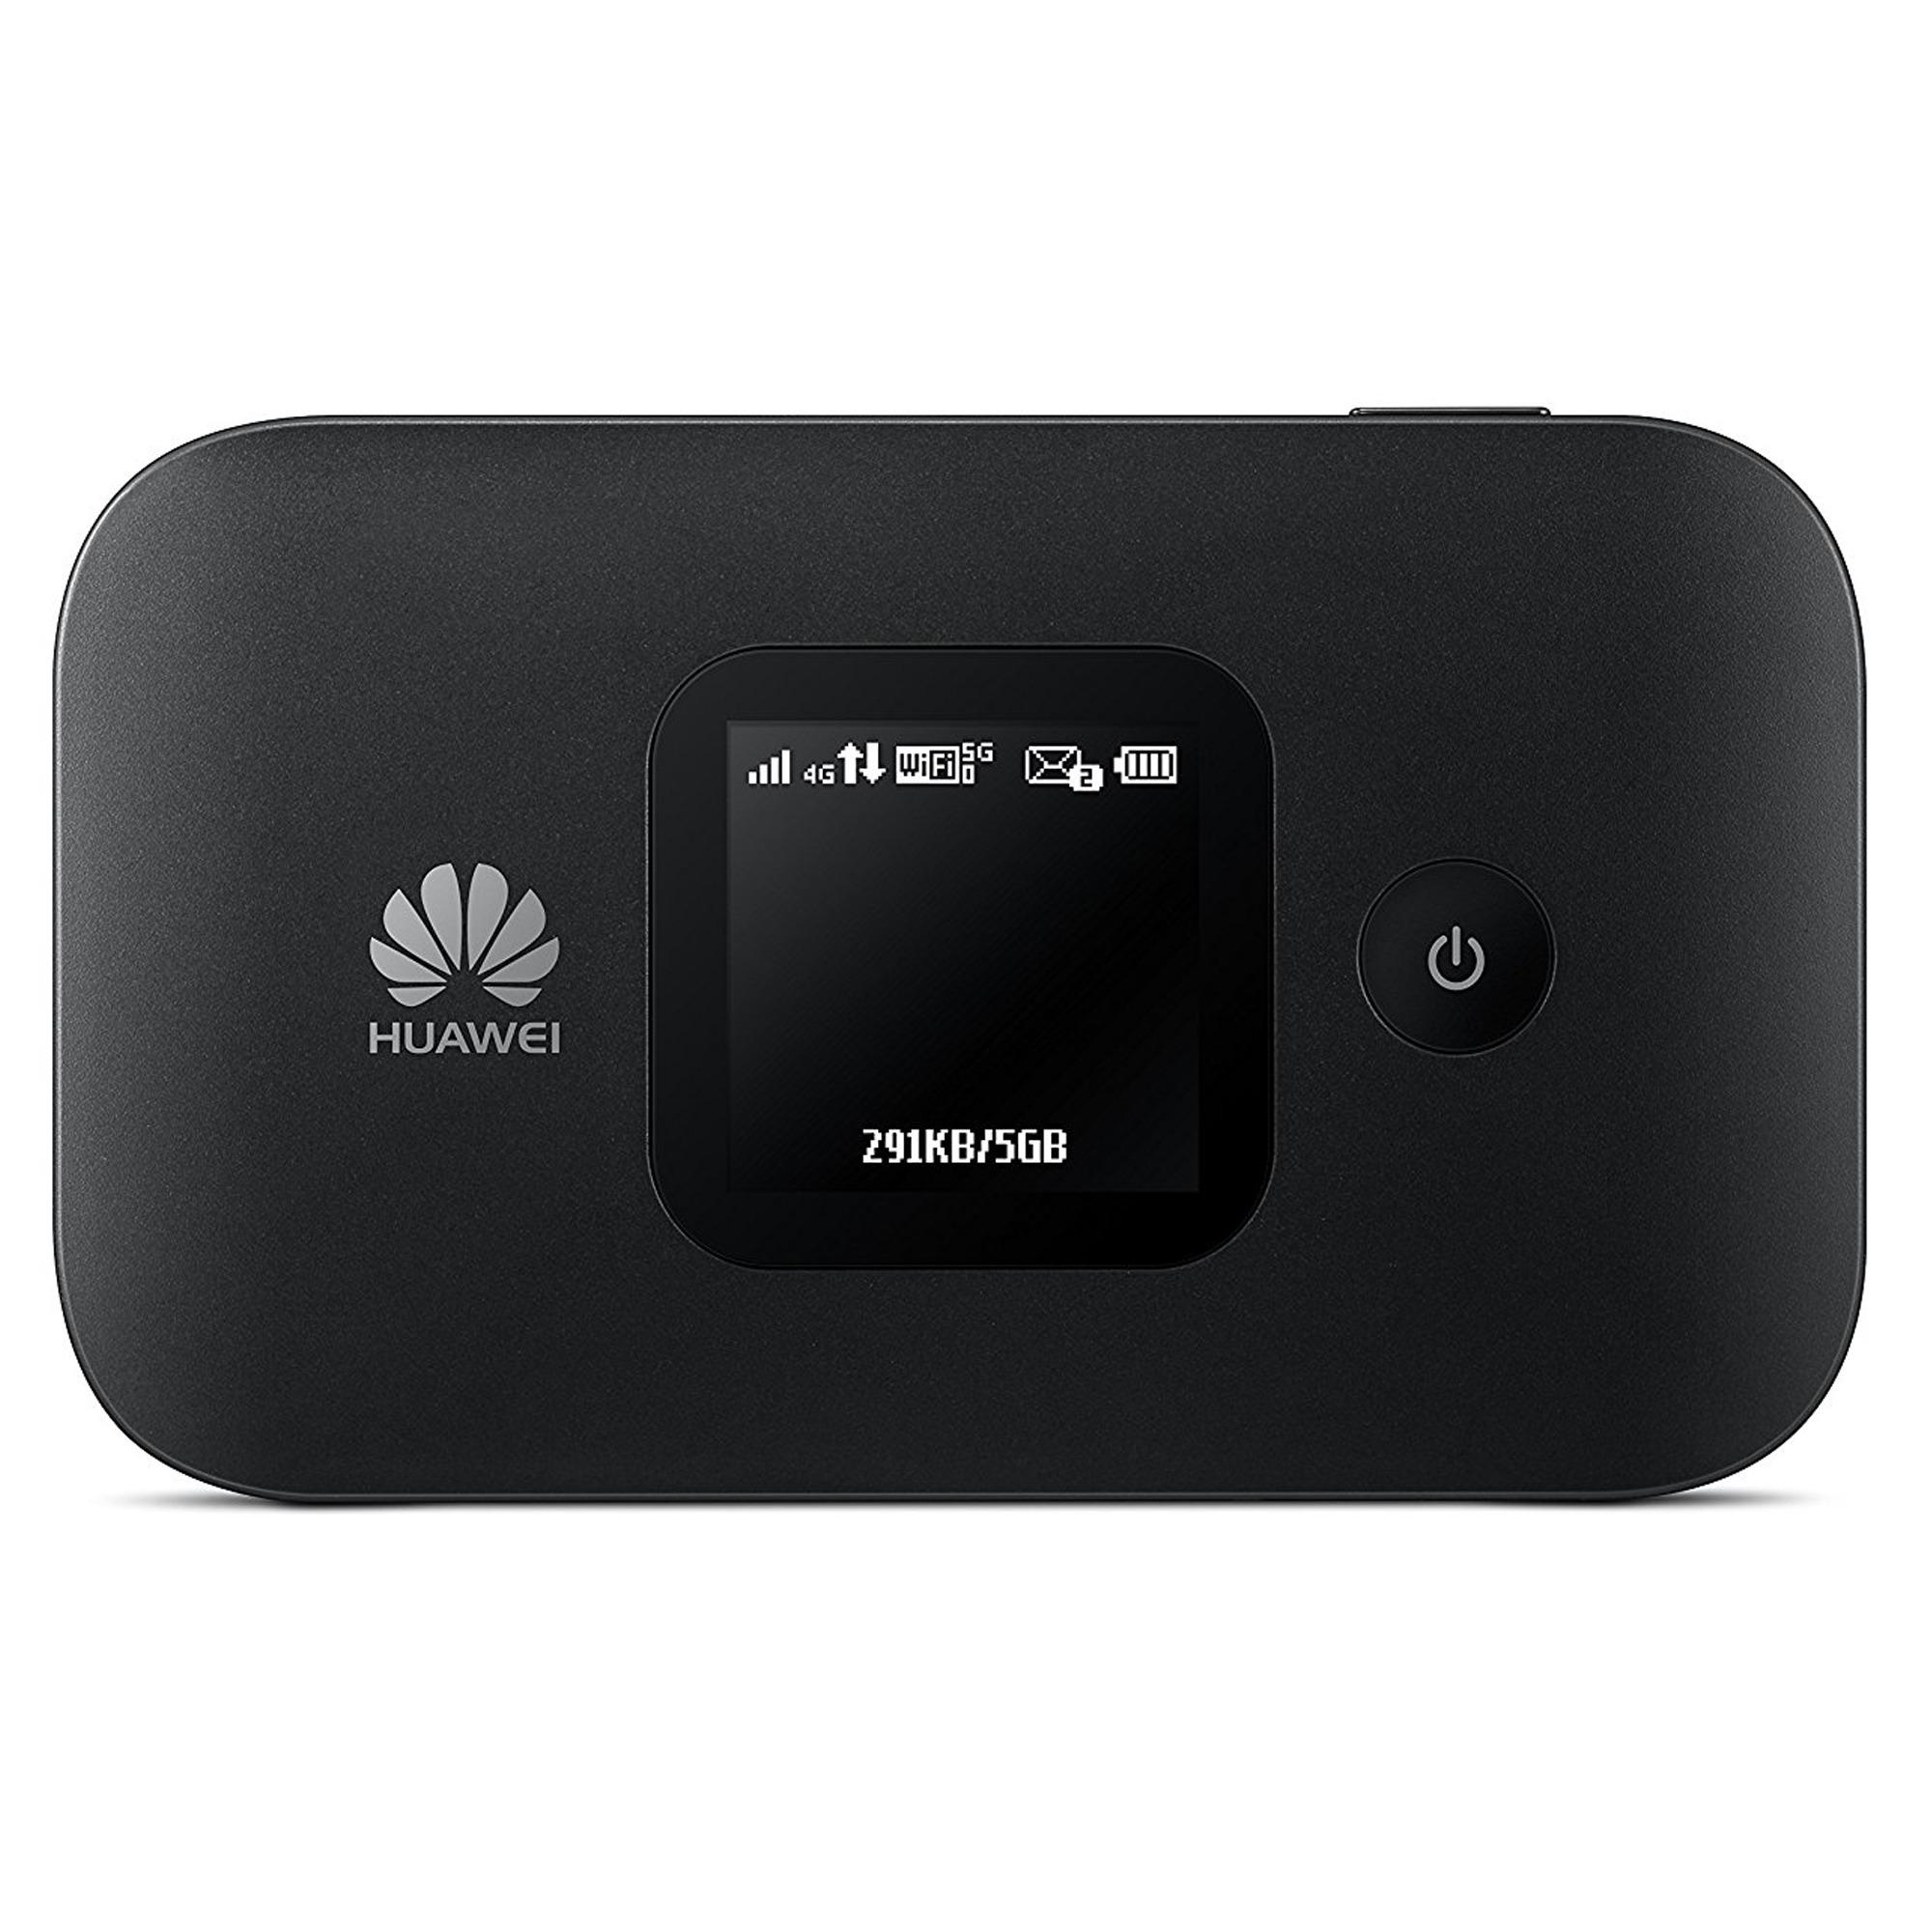 Mobile Broadband For Sale Wireless Internet Prices Modem Wifi Bolt Max 1 Unlock Gsm 72mbps Second Huawei E5577 4g Lte Pocket Hotspot